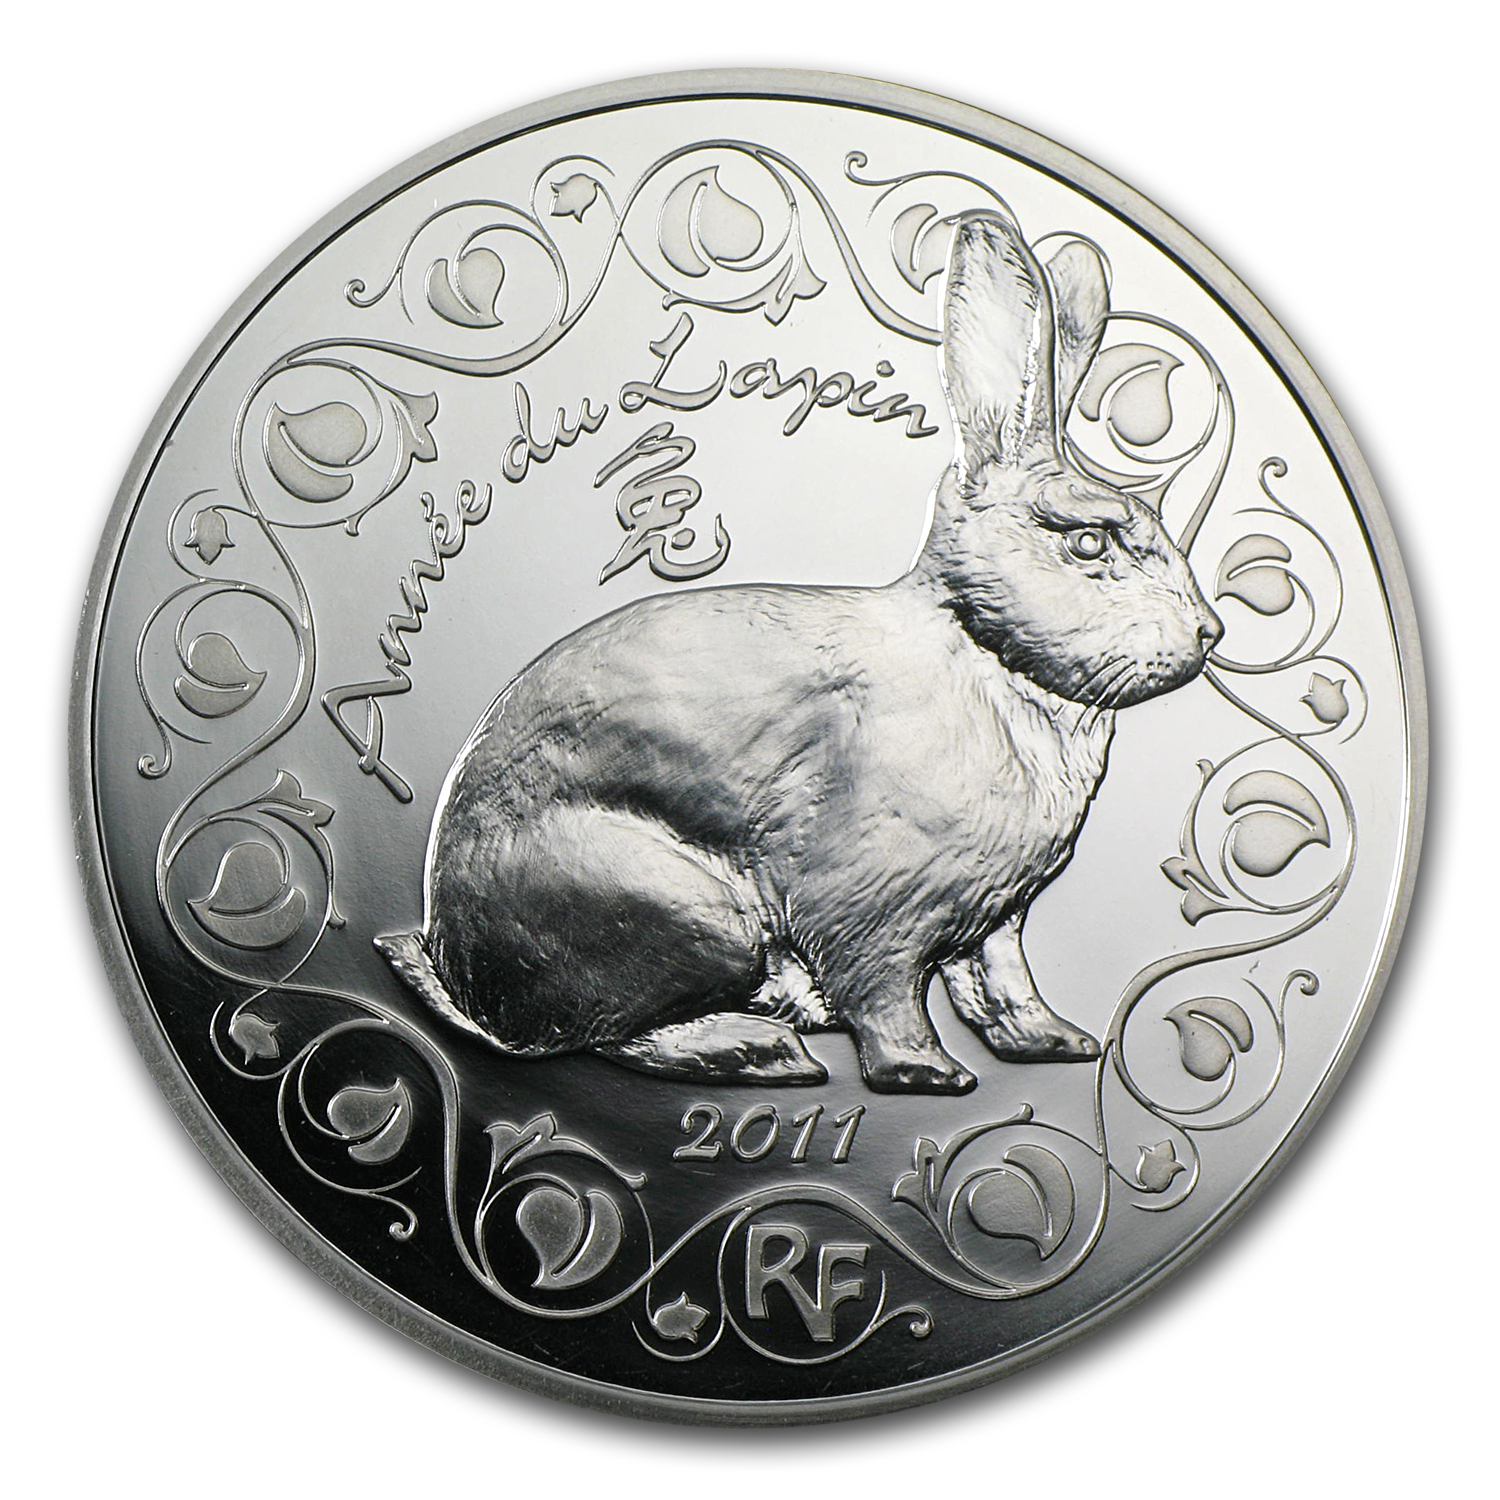 2011 €5 Silver France Year of the Rabbit - Lunar Series